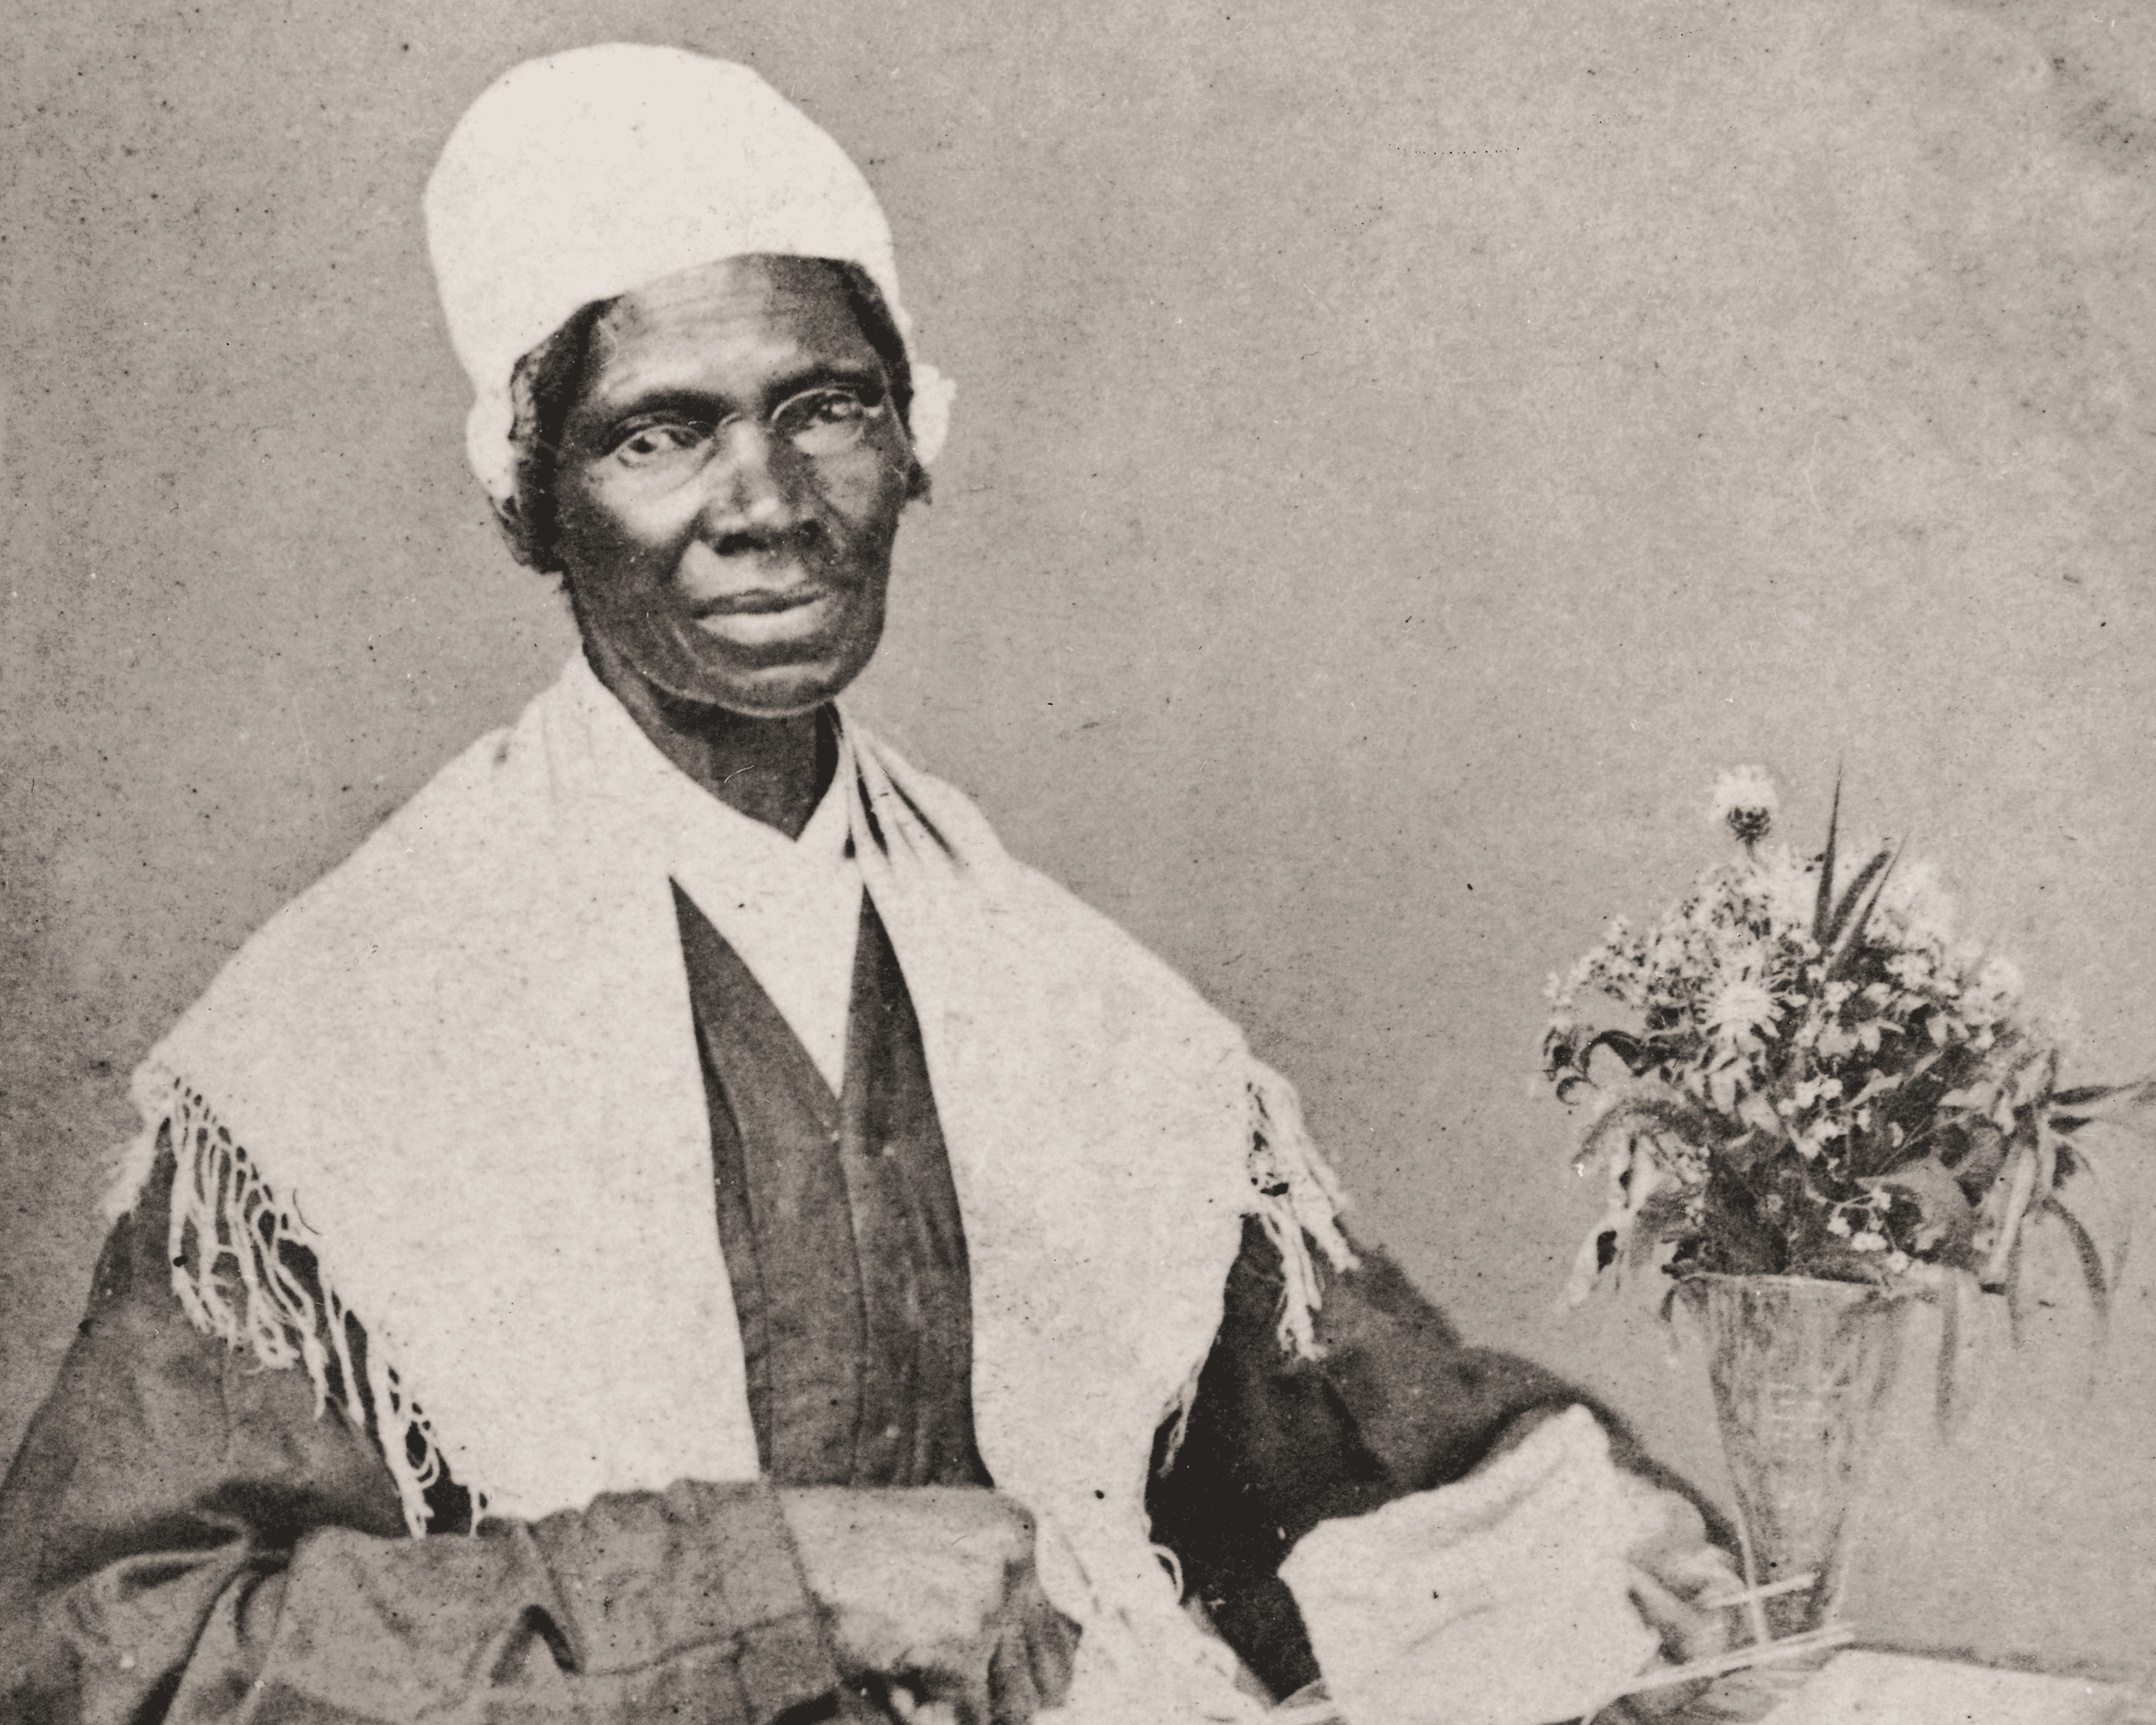 """the history of sojourner truth Sojourner truth was an african american evangelist, abolitionist, women's rights activist and author who escaped to freedom in 1826 she is famous for her stirring """"ain't i a woman"""" speech, delivered in 1851 learn more about sojourner truth at historycom."""